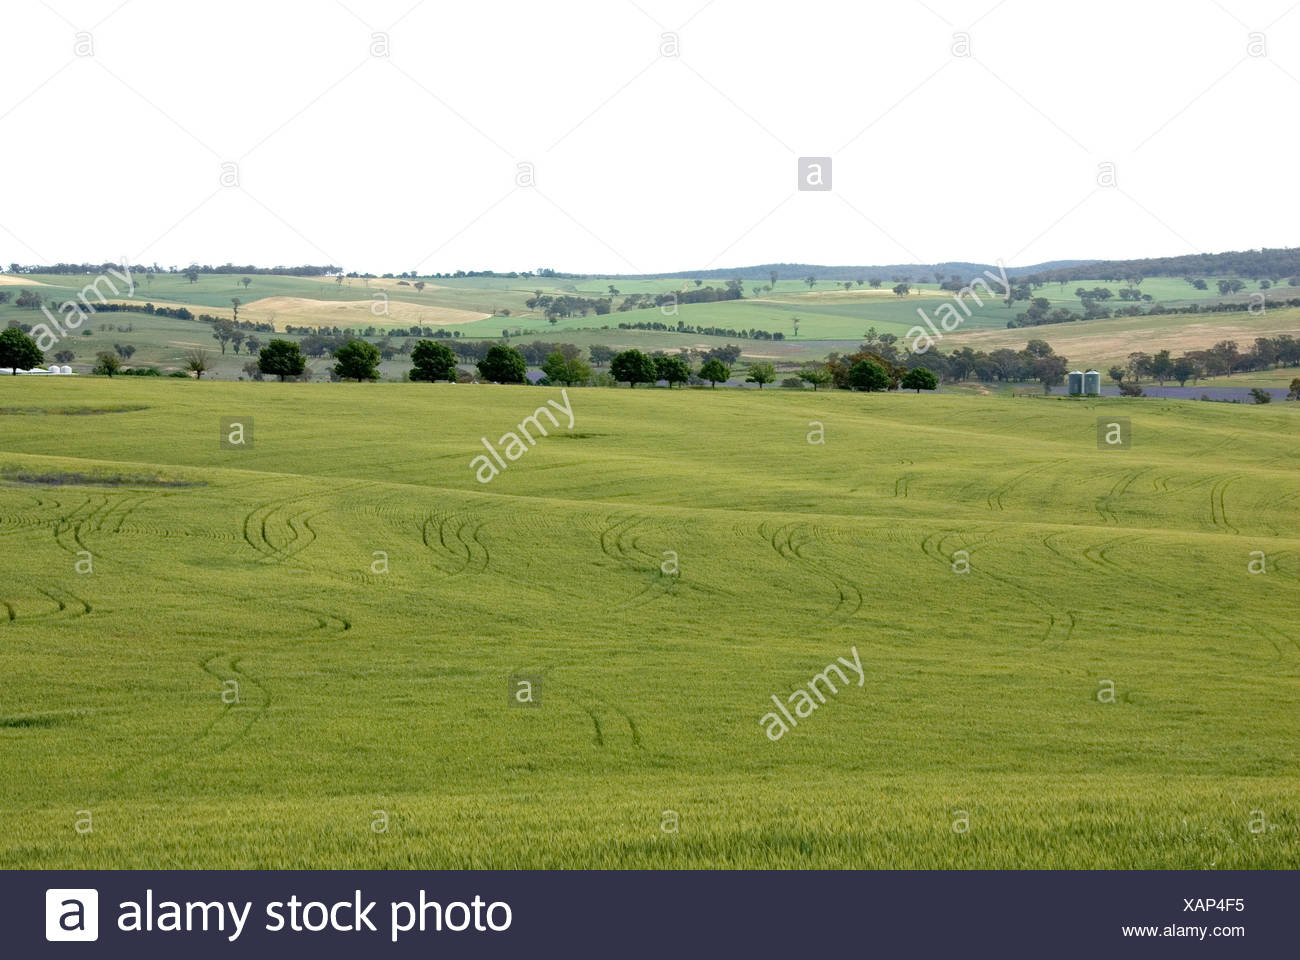 agricultural tree trees agriculture farming field australia wheat farm crops - Stock Image